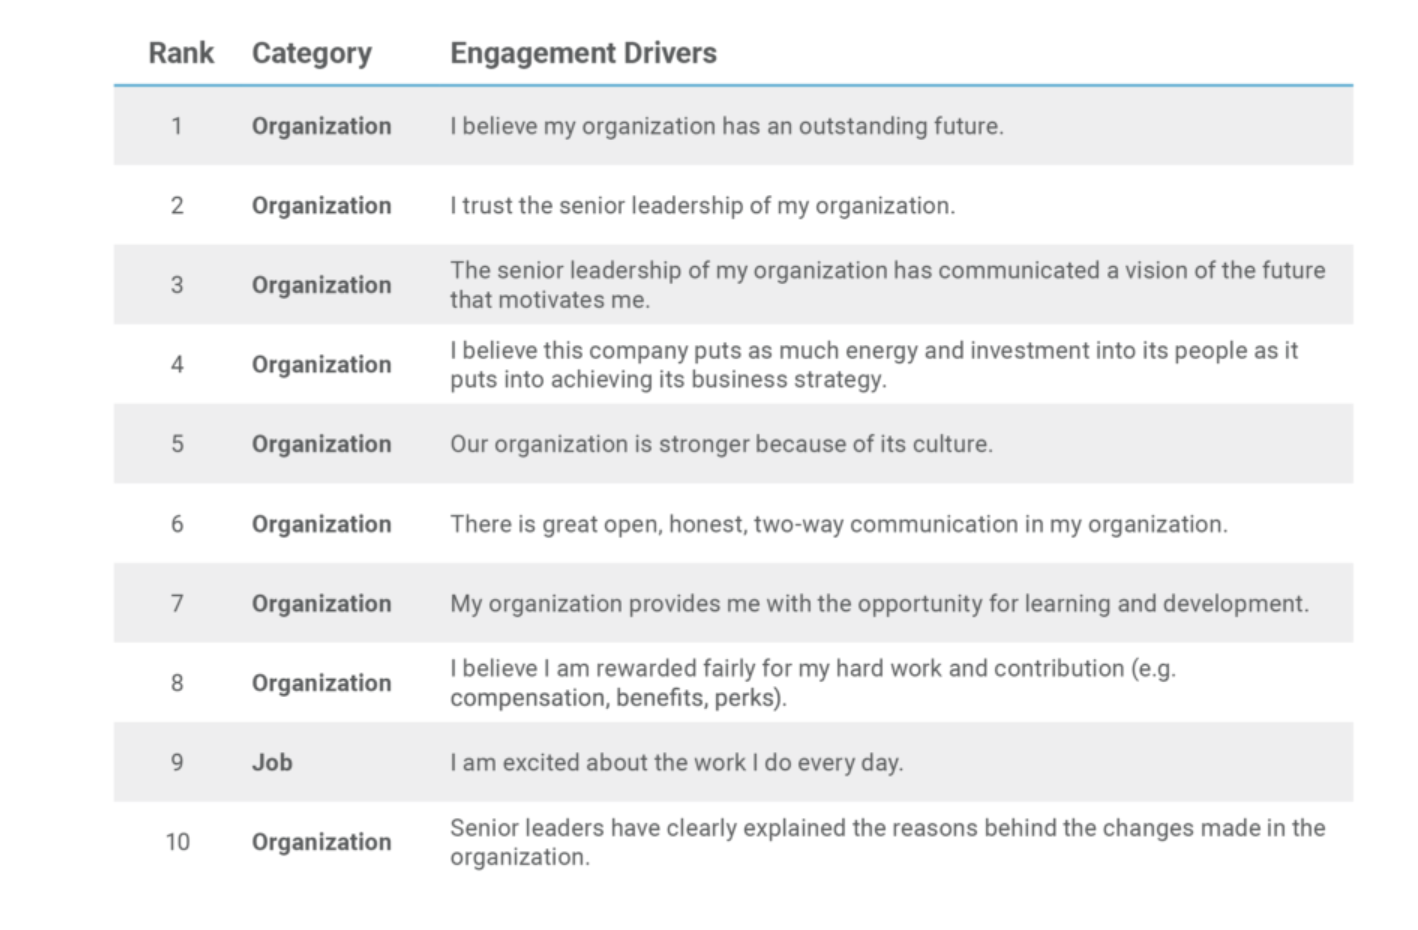 company culture drives engagement